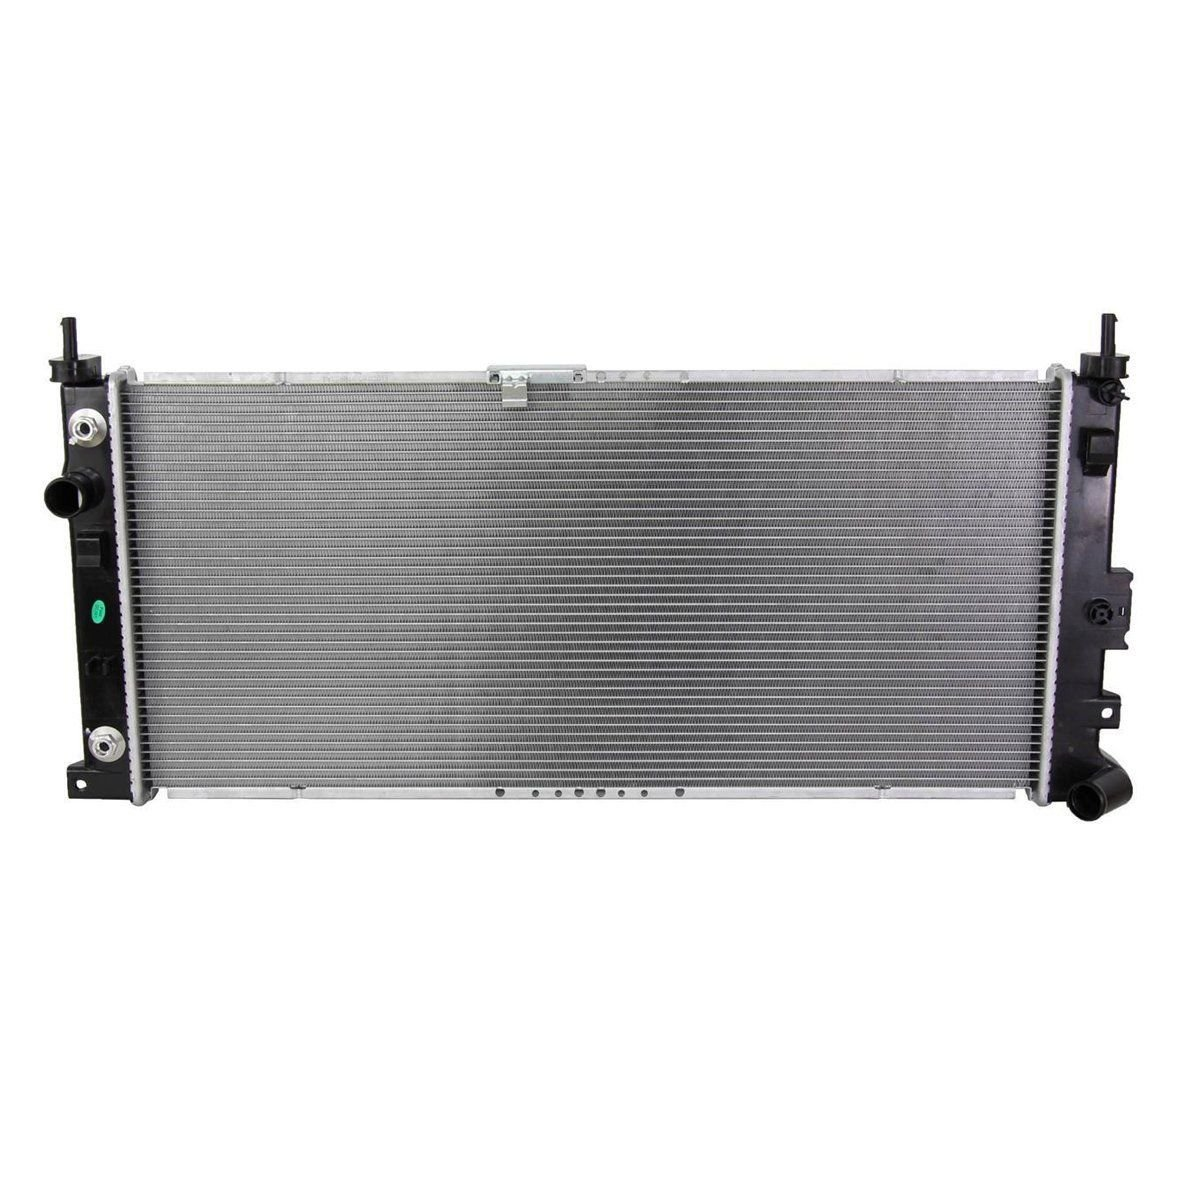 SCITOO Radiator 2881 for Pontiac Montana Uplander Buick Terraza Saturn Relay 3.9L 2006-2009 by Scitoo